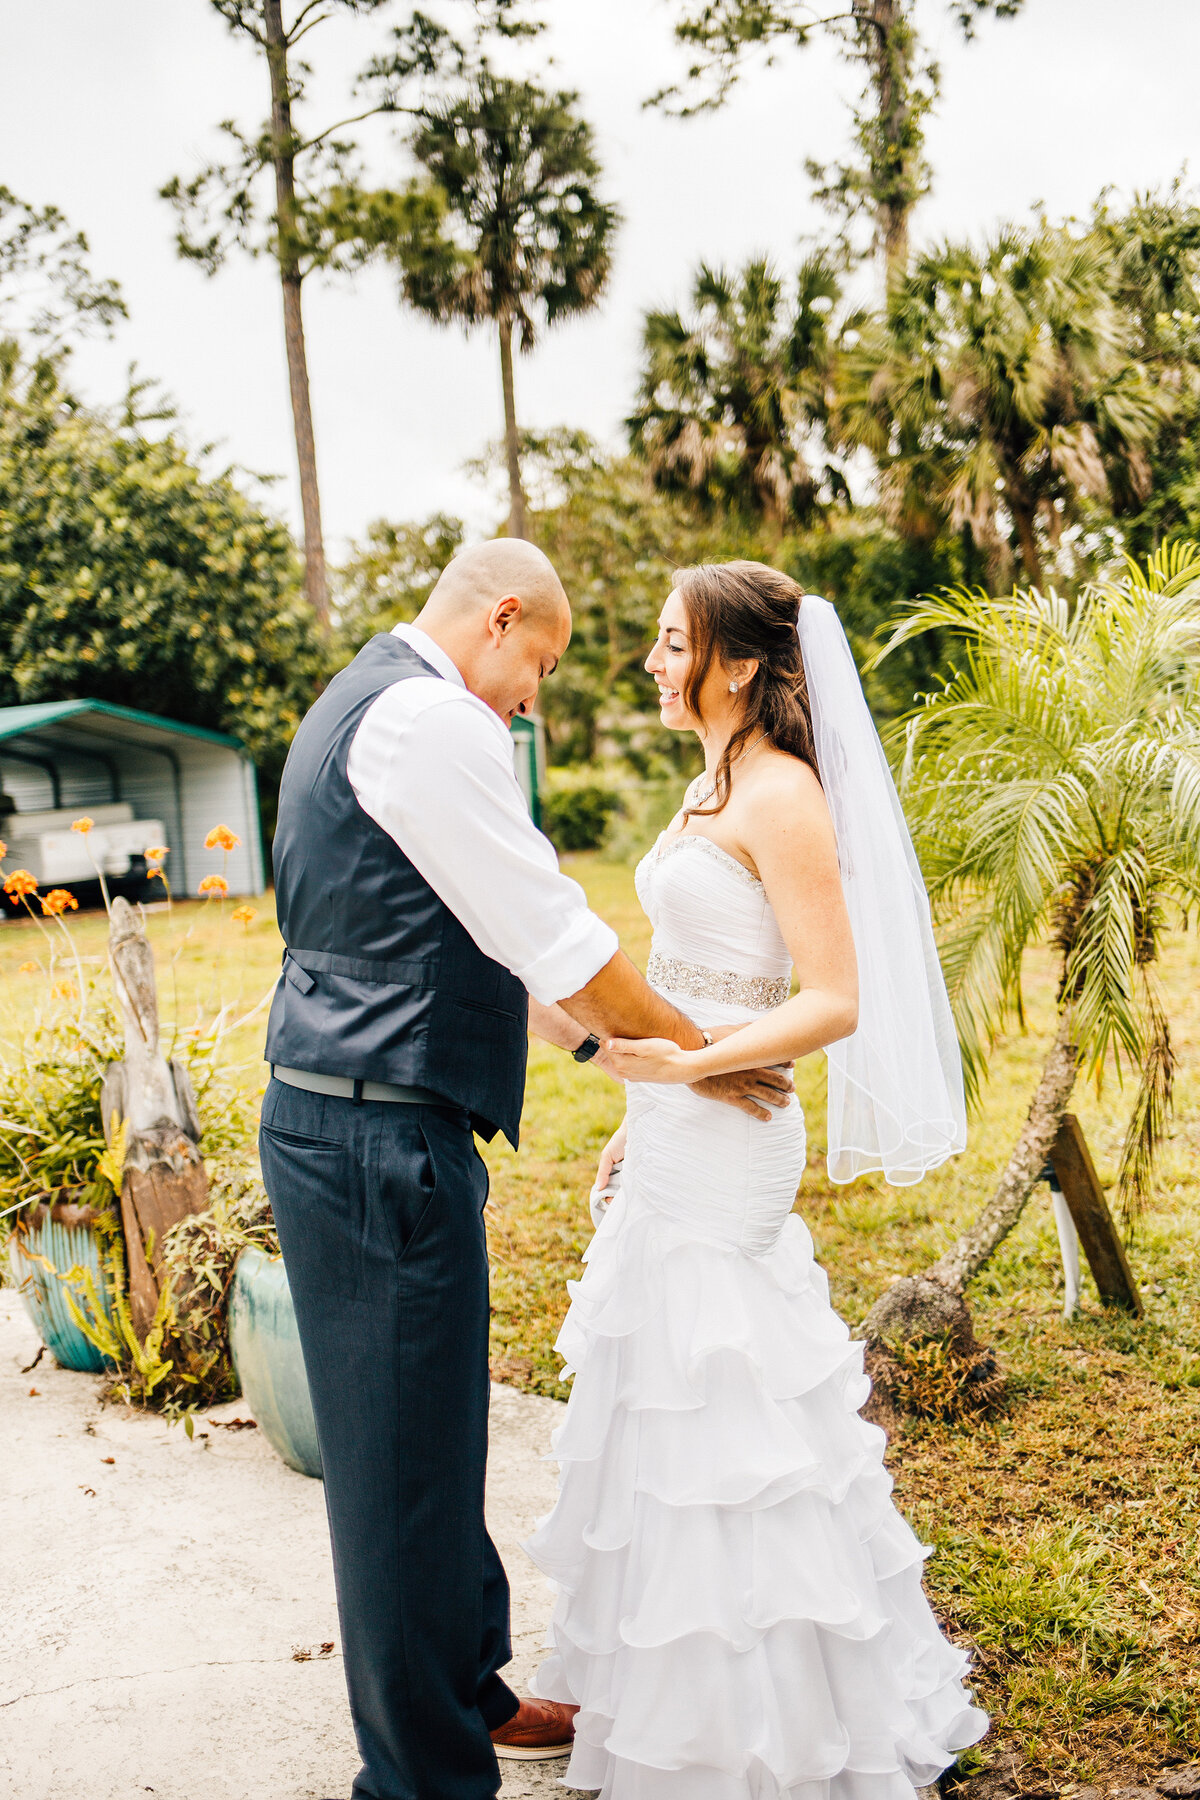 Kimberly_Hoyle_Photography_Marrero_Millikens_Reef_Wedding-19